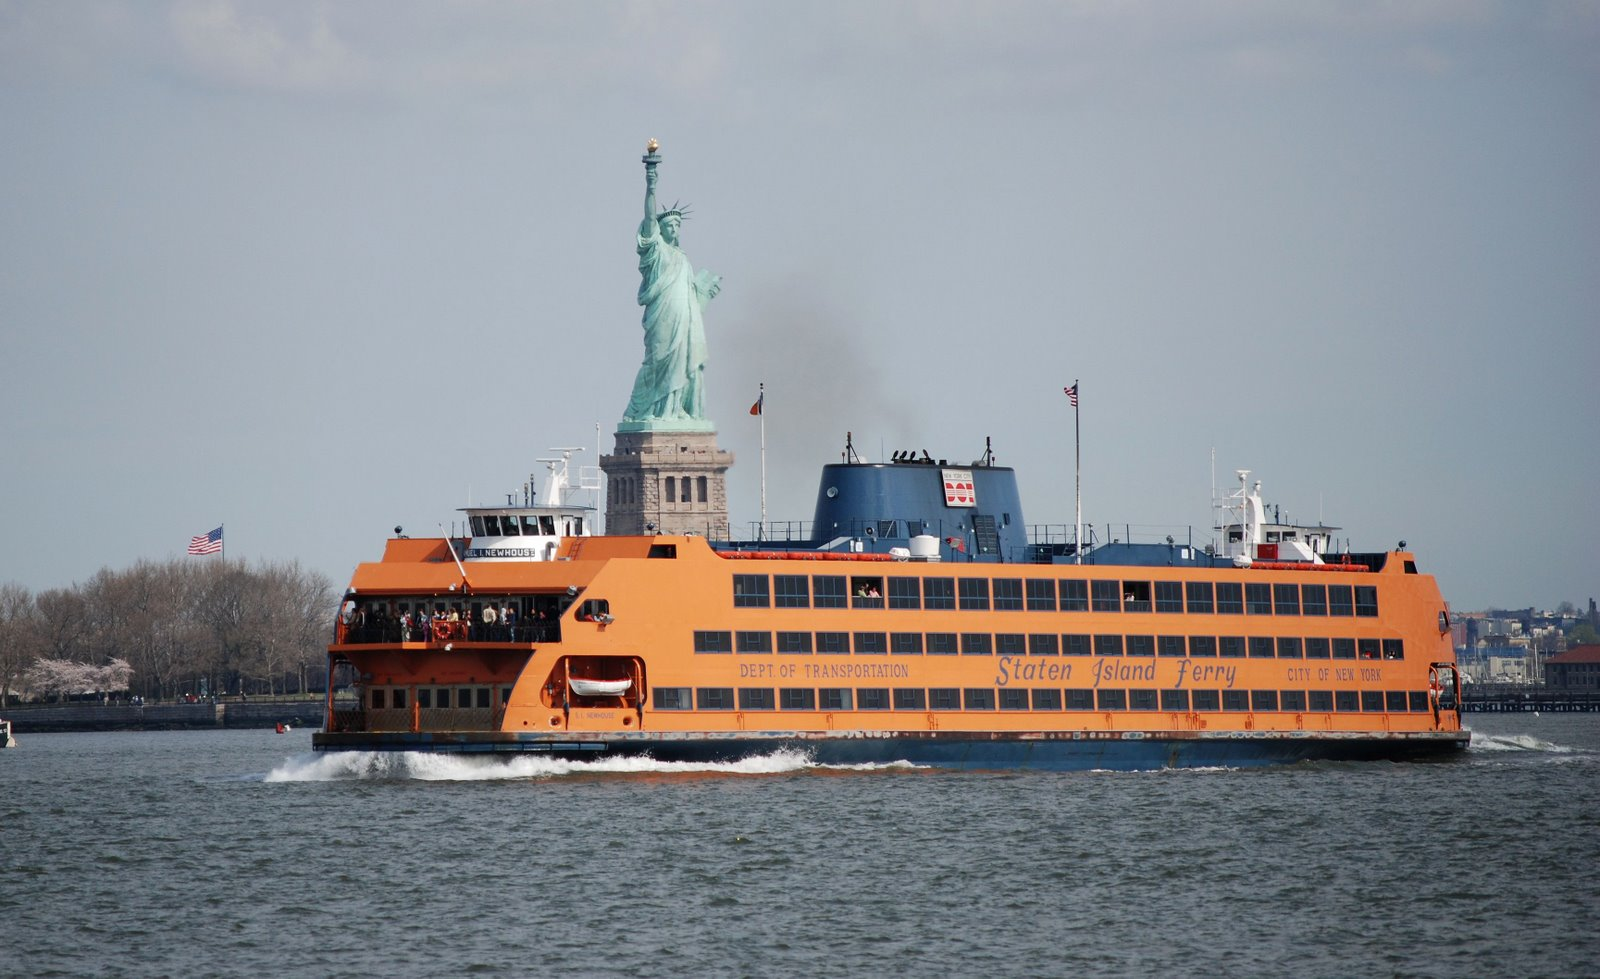 staten island ferry, new york city